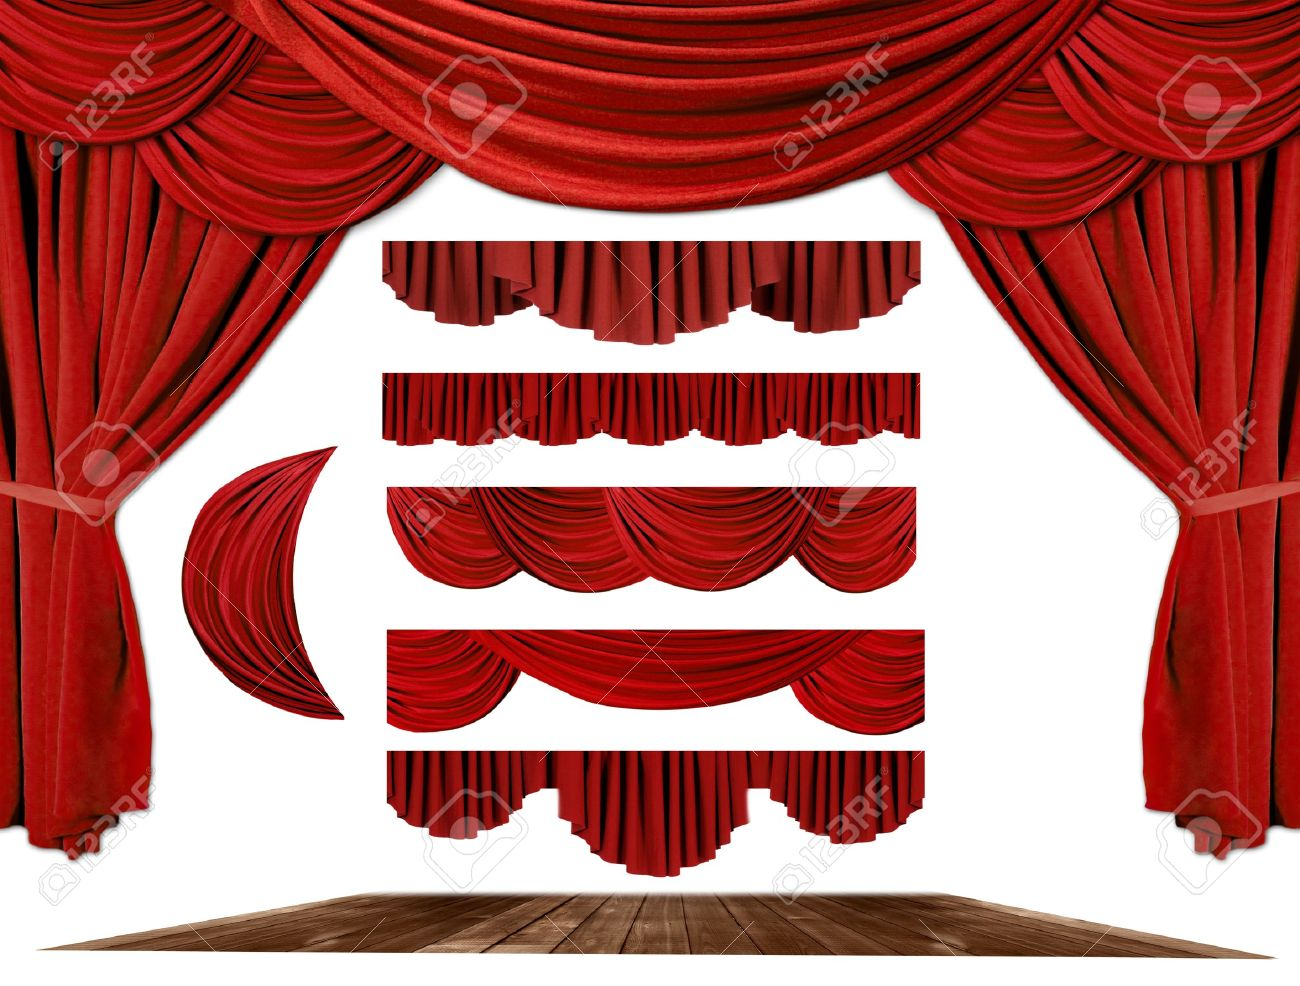 Stock photo dramatic red old fashioned elegant theater stage stock - Red Dramatic Old Fashioned Elegant Theater Stage Elements Of Swags To Make Your Own Background Stock